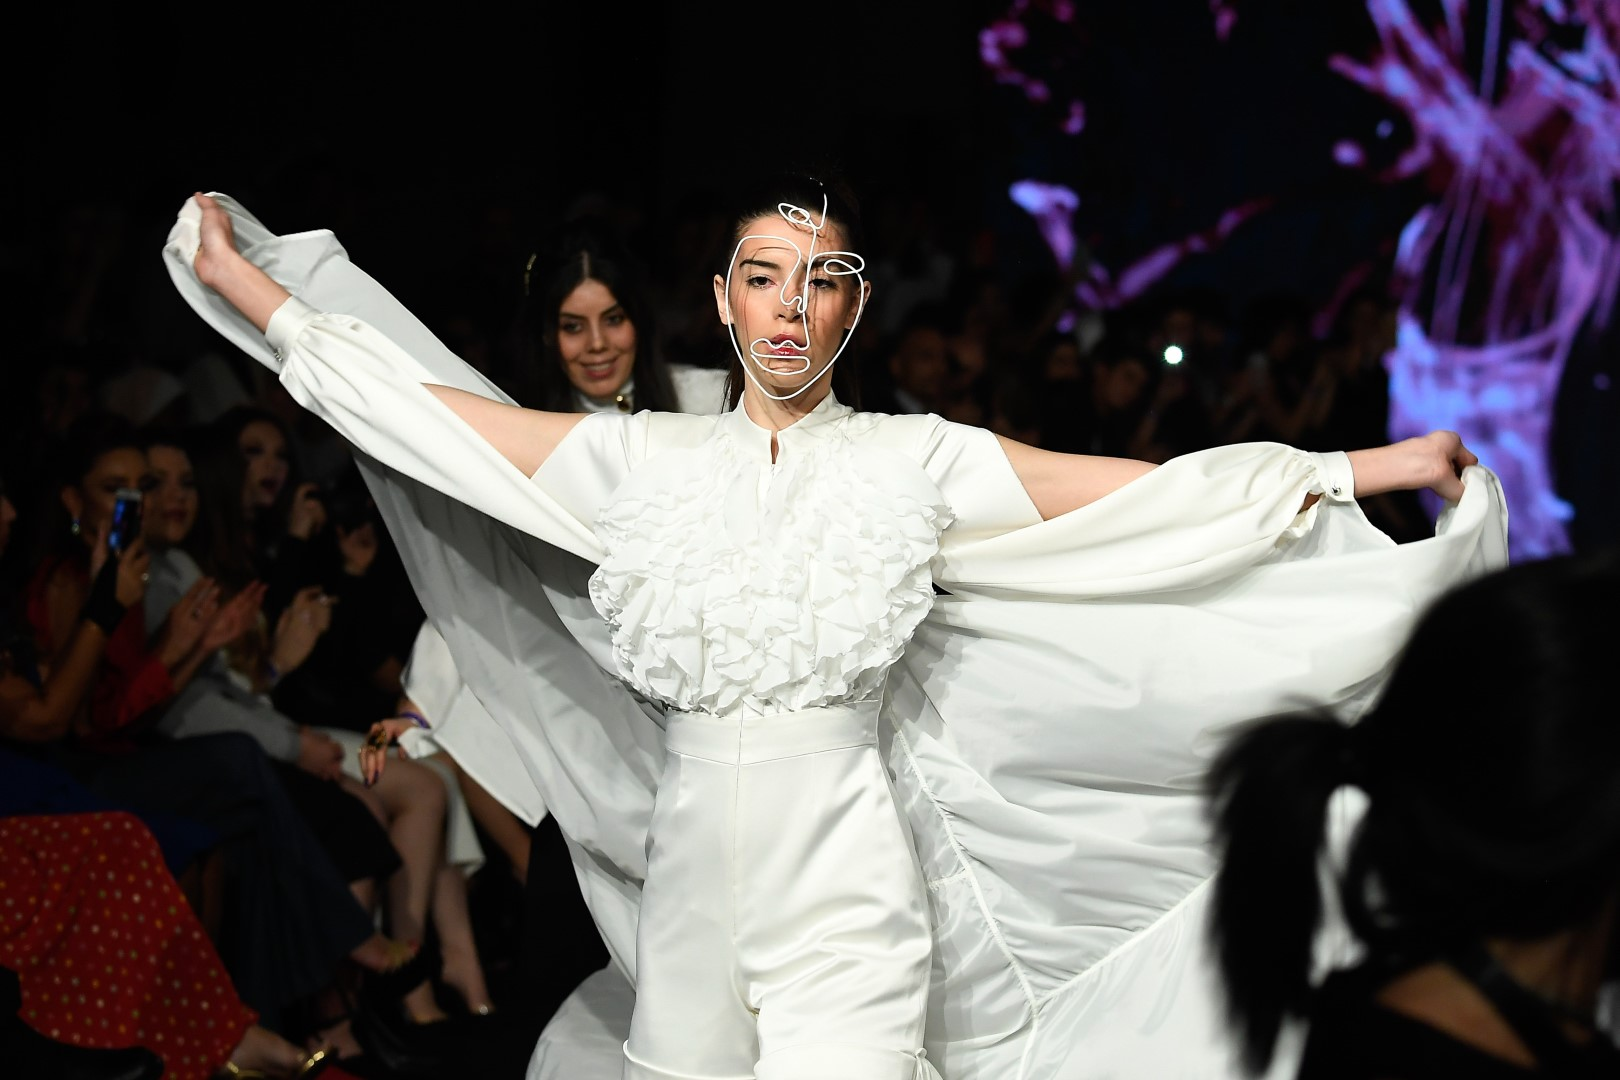 AMMAN, JORDAN - MARCH 30: A model walks the runway at the Lindt Chocolate Couture show during Jordan Fashion Week 019 at the Kempinski Amman on March 30, 2019 in Amman, Jordan. (Photo by Arun Nevader/Getty Images for Jordan Fashion Week)